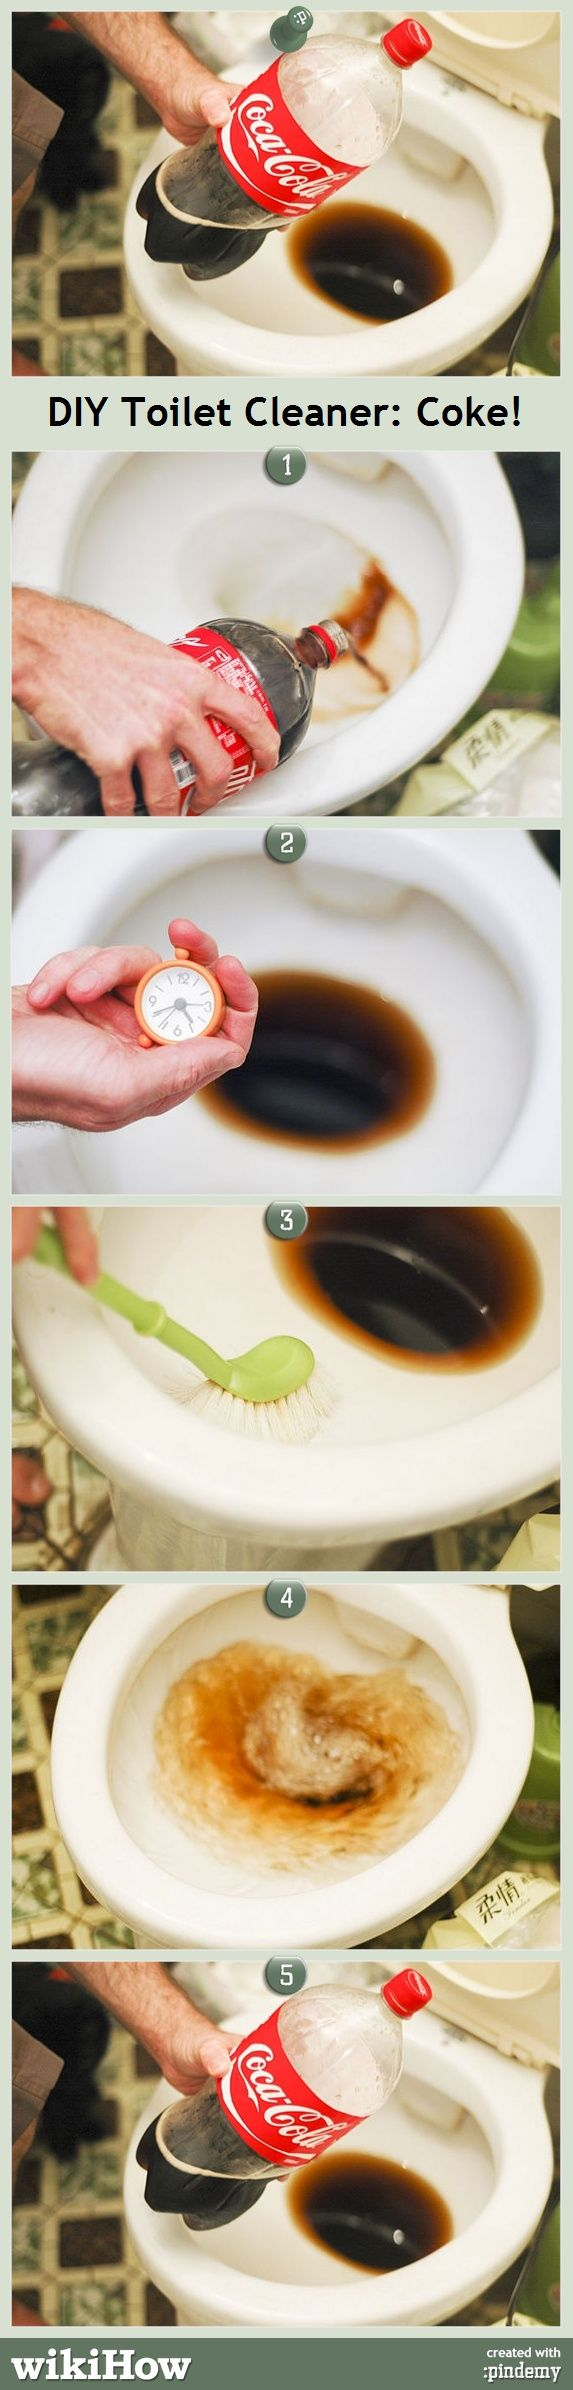 COKE AS A TOILET CLEANER! IT COULD REMOVE RUSTS TOO!